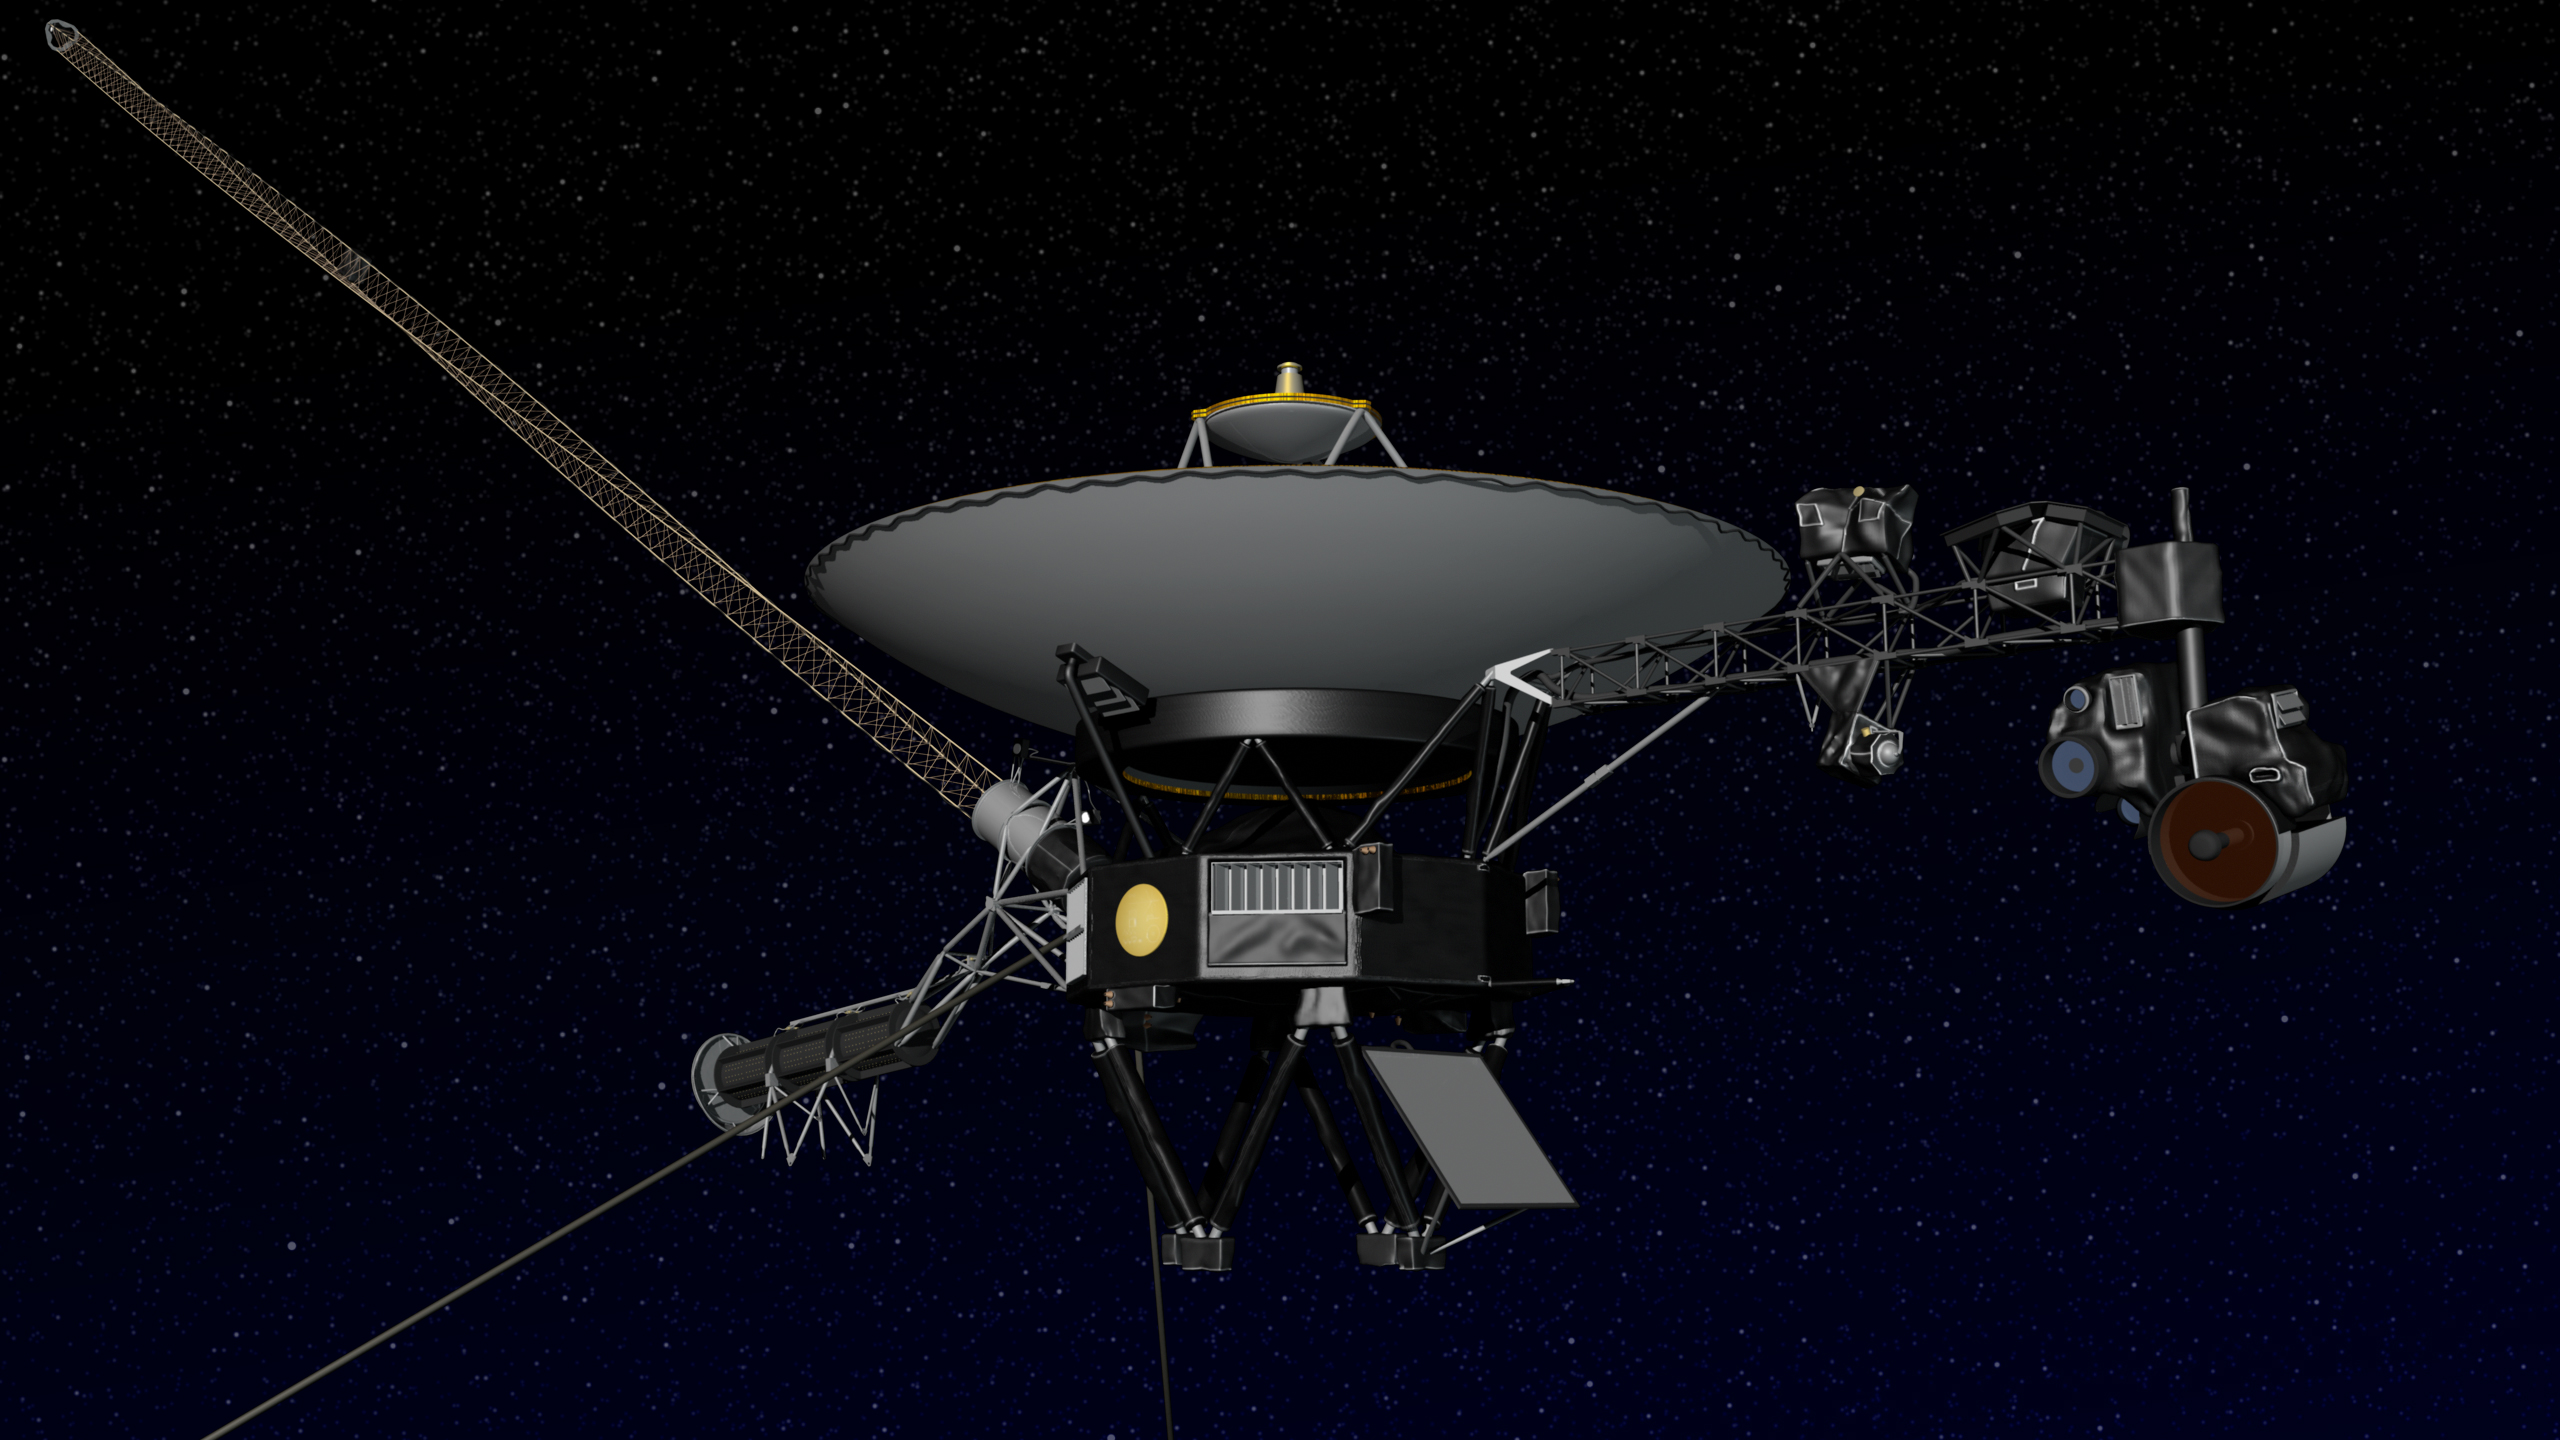 NASA - Five Things About NASA's Voyager Mission